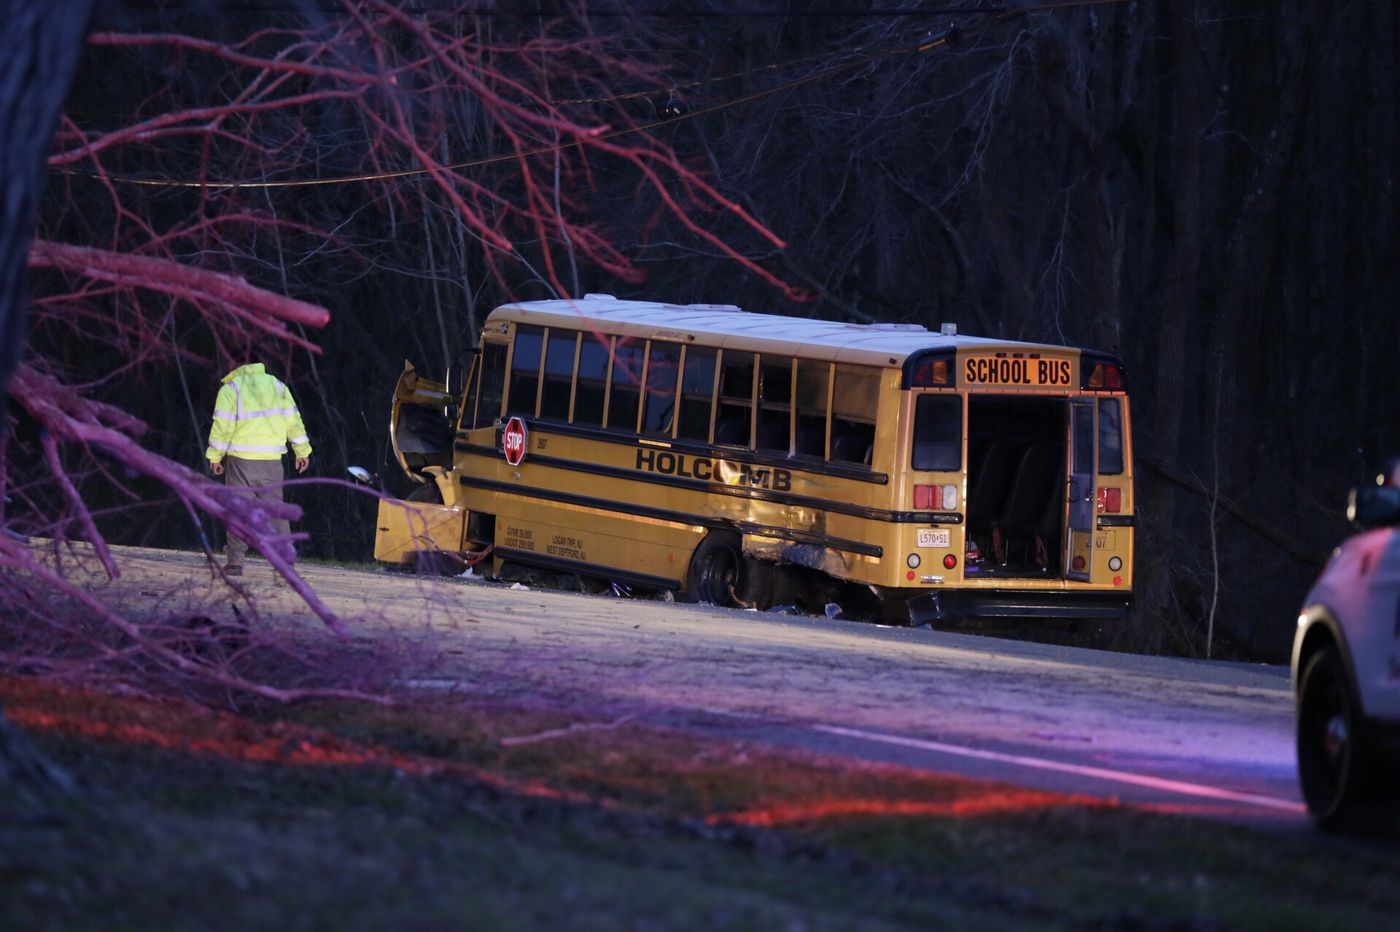 Minor injuries reported in Gloucester County school bus accident